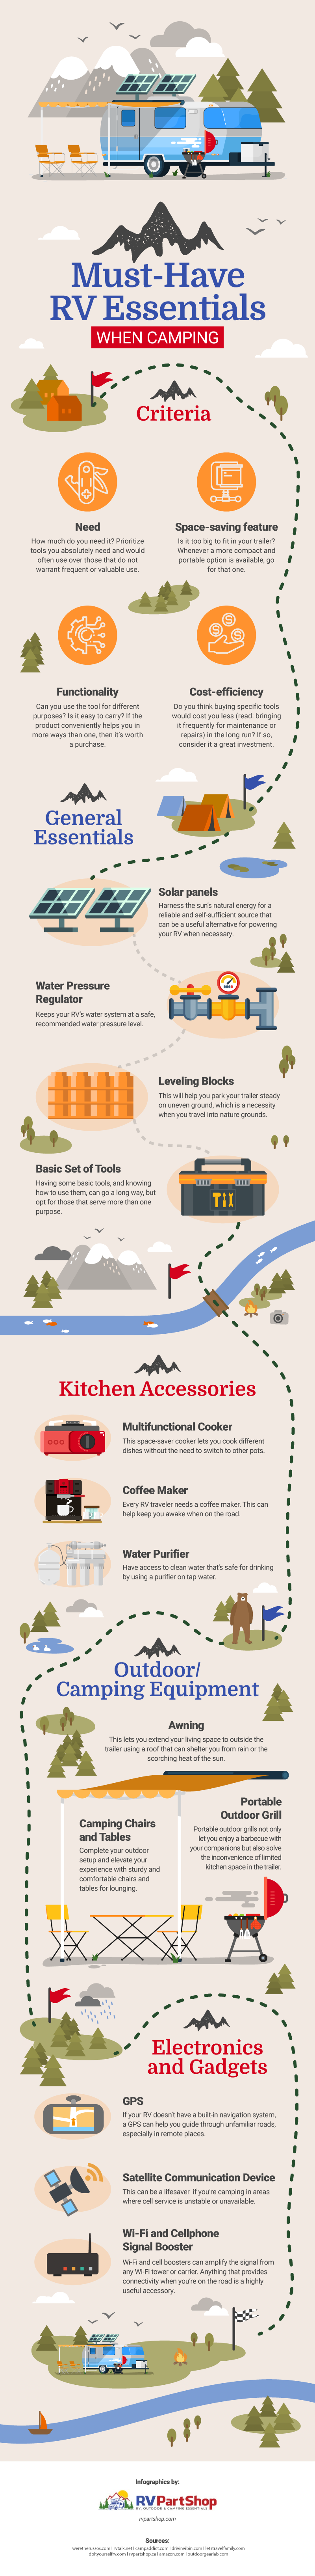 RV Essentials: A Must-Have List When Camping